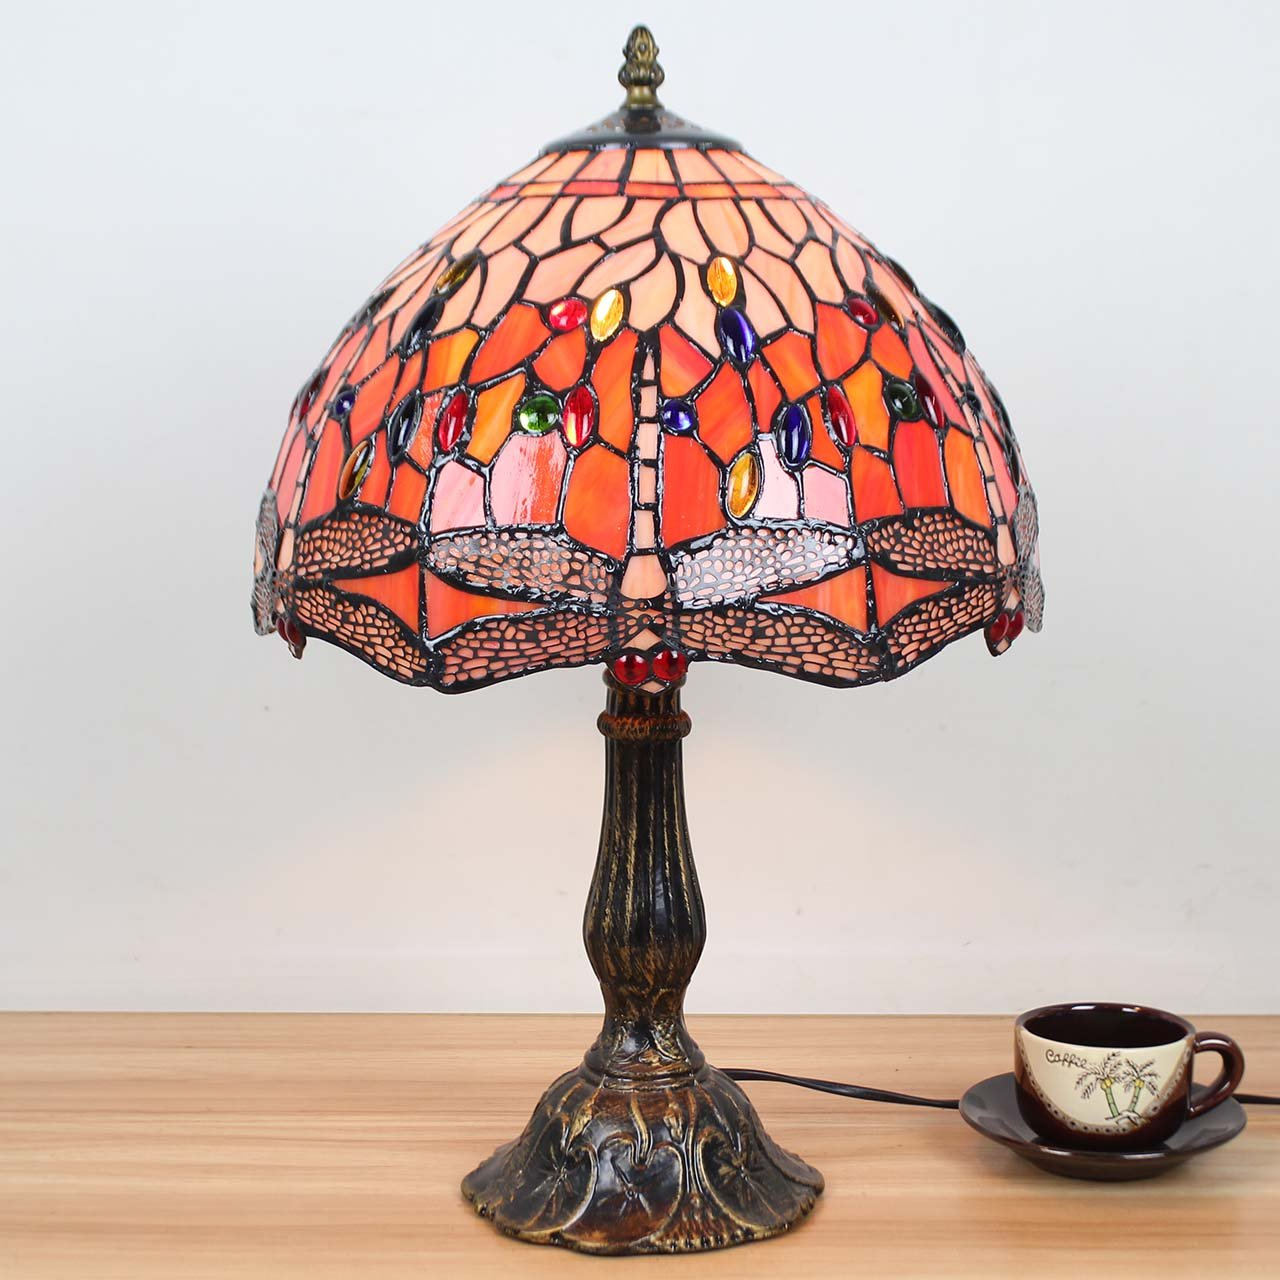 8a6a37143d74 Bieye L30023 18 inch Dragonfly Tiffany Style Stained Glass Table Lamp with  Zinc Base  Amazon.co.uk  Lighting